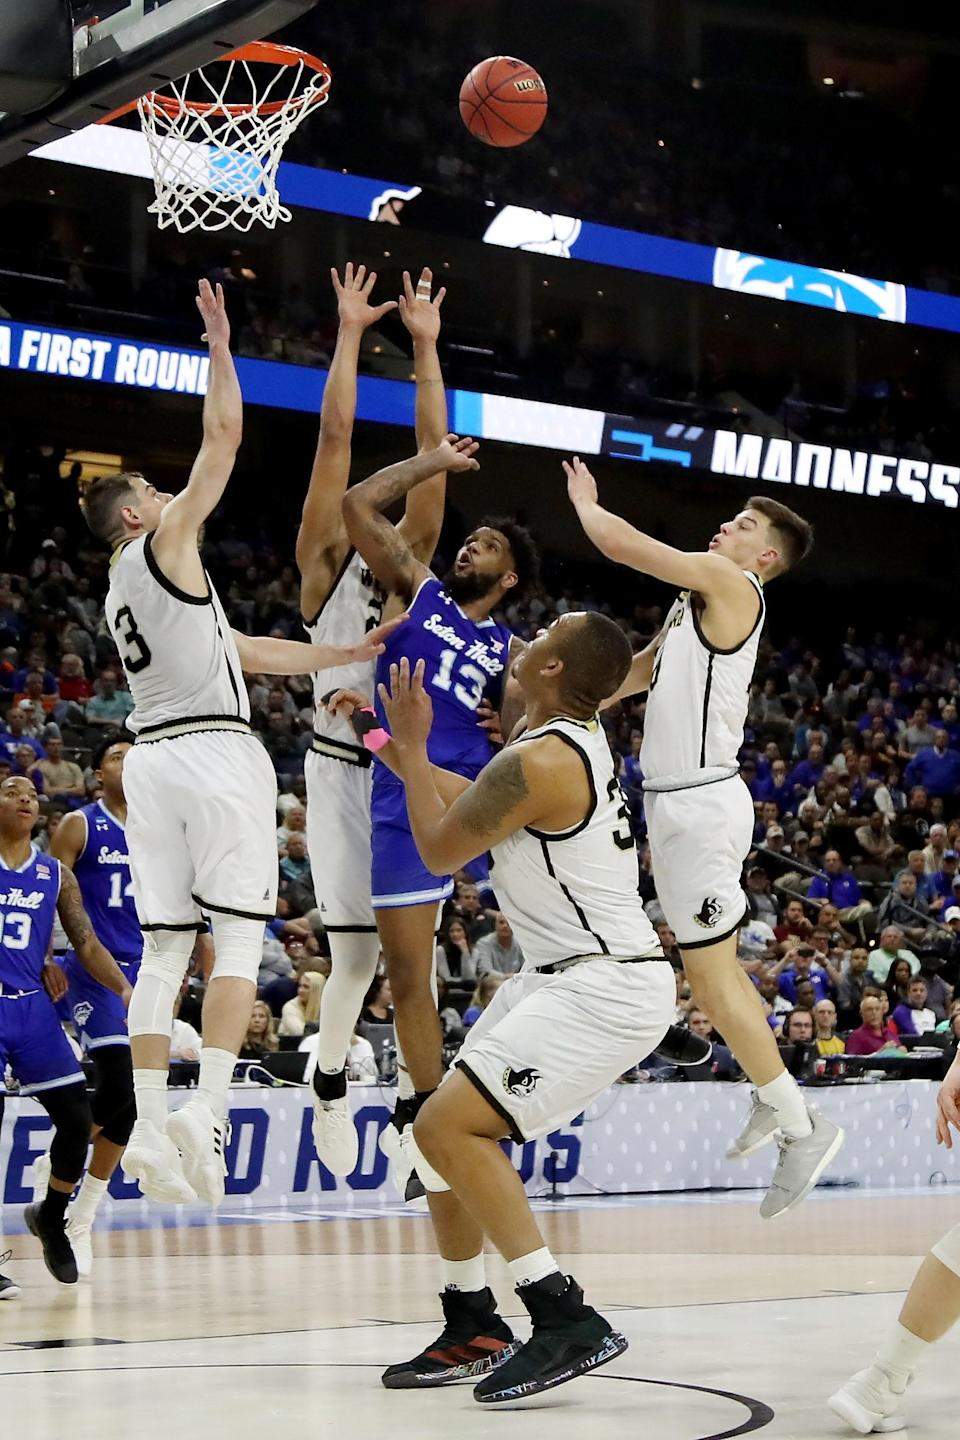 <p>Myles Powell #13 of the Seton Hall Pirates attempts a shot in the first half against the Wofford Terriers during the first round of the 2019 NCAA Men's Basketball Tournament at Jacksonville Veterans Memorial Arena on March 21, 2019 in Jacksonville, Florida. </p>